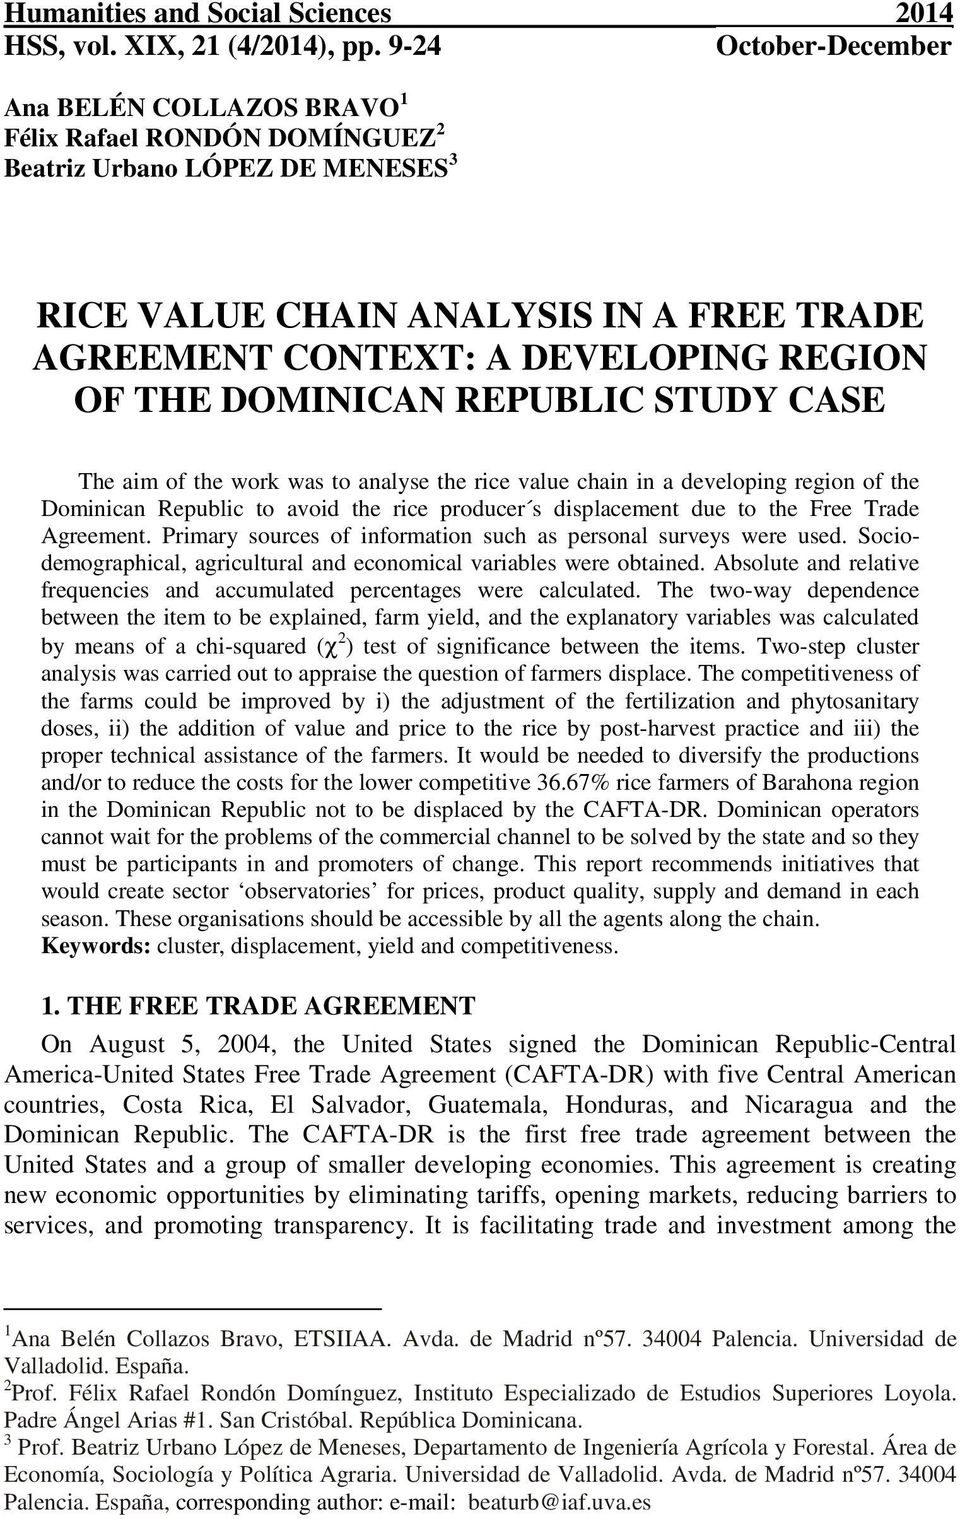 THE DOMINICAN REPUBLIC STUDY CASE The aim of the work was to analyse the rice value chain in a developing region of the Dominican Republic to avoid the rice producer s displacement due to the Free